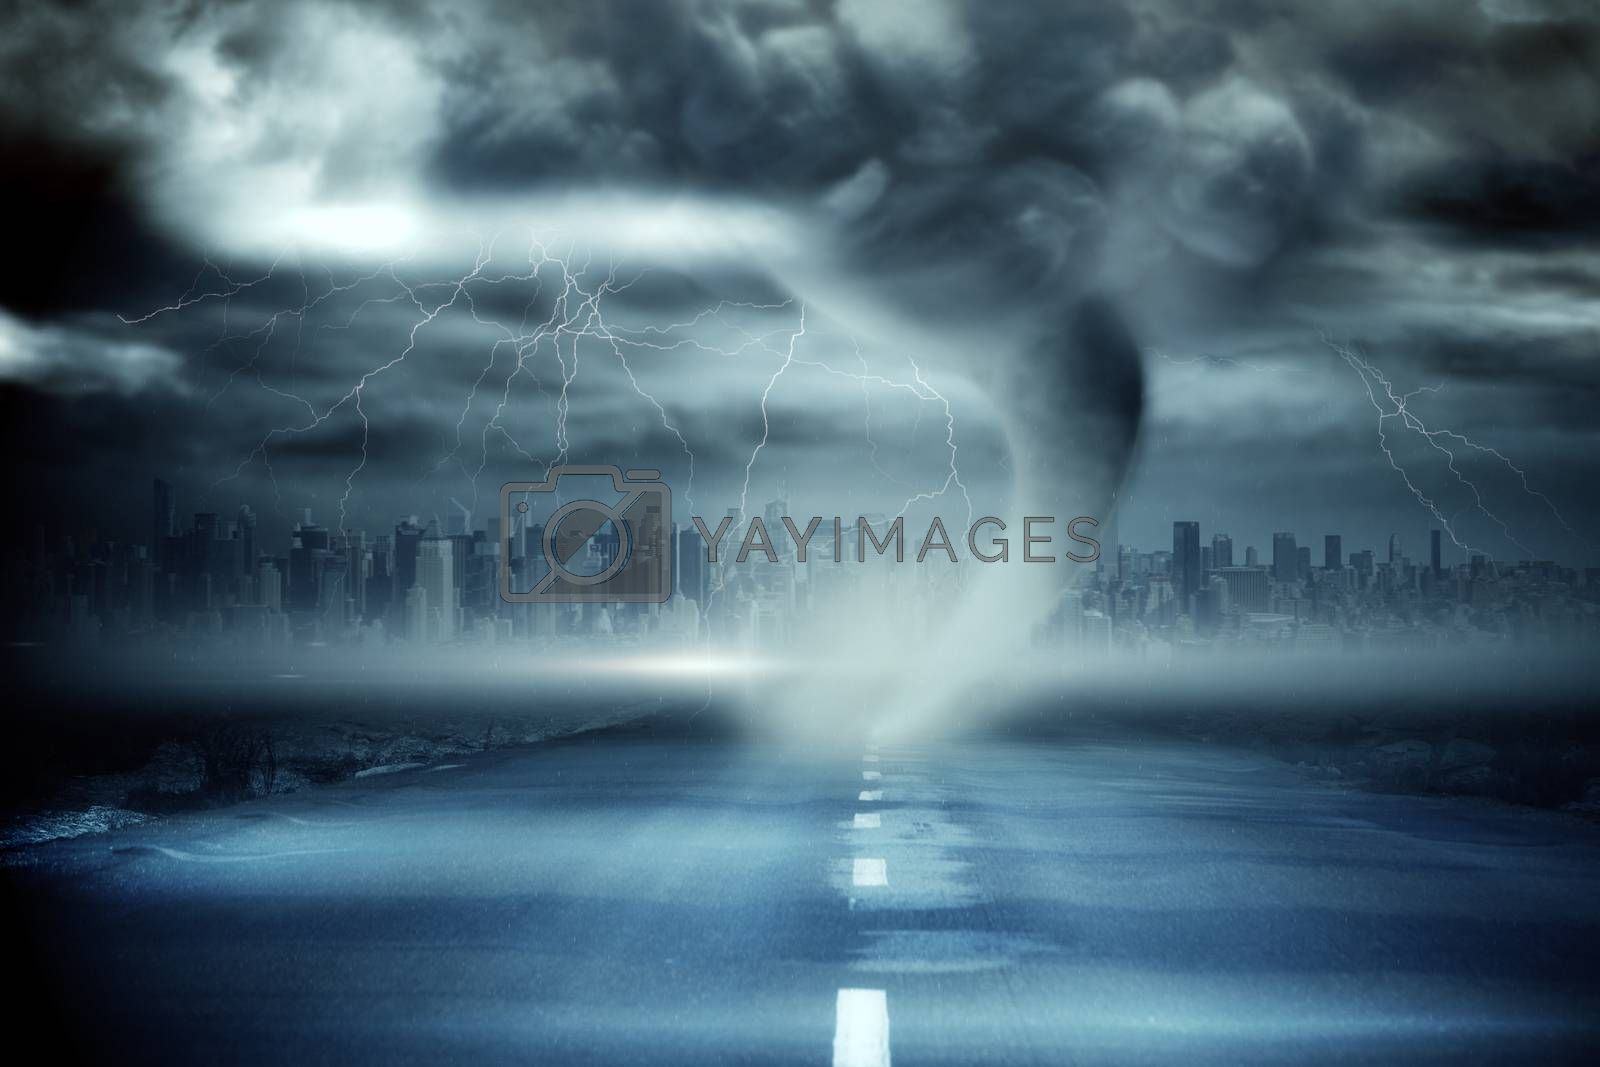 Royalty free image of Stormy sky with tornado over road by Wavebreakmedia